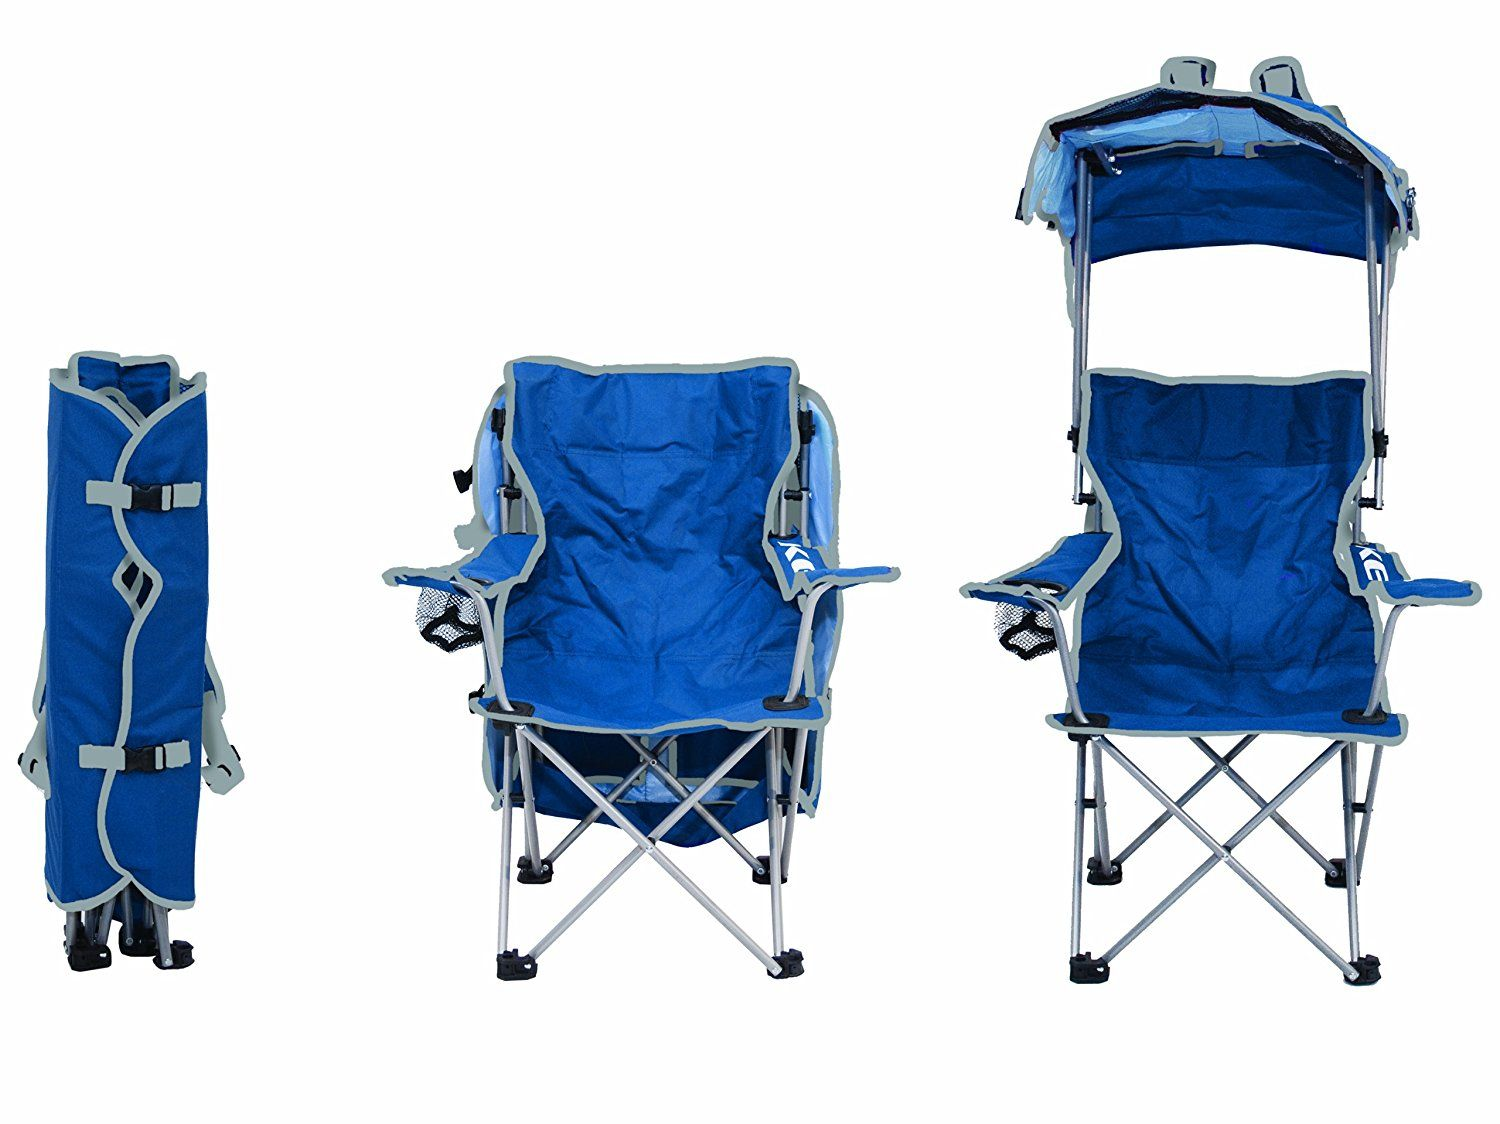 Camping Chair For Kids Includes An Adjustable Sunshade With UPF Protection,  Built In Cup Holder, And Stylish Design. This Ingenious Portable Folding  Chair ...